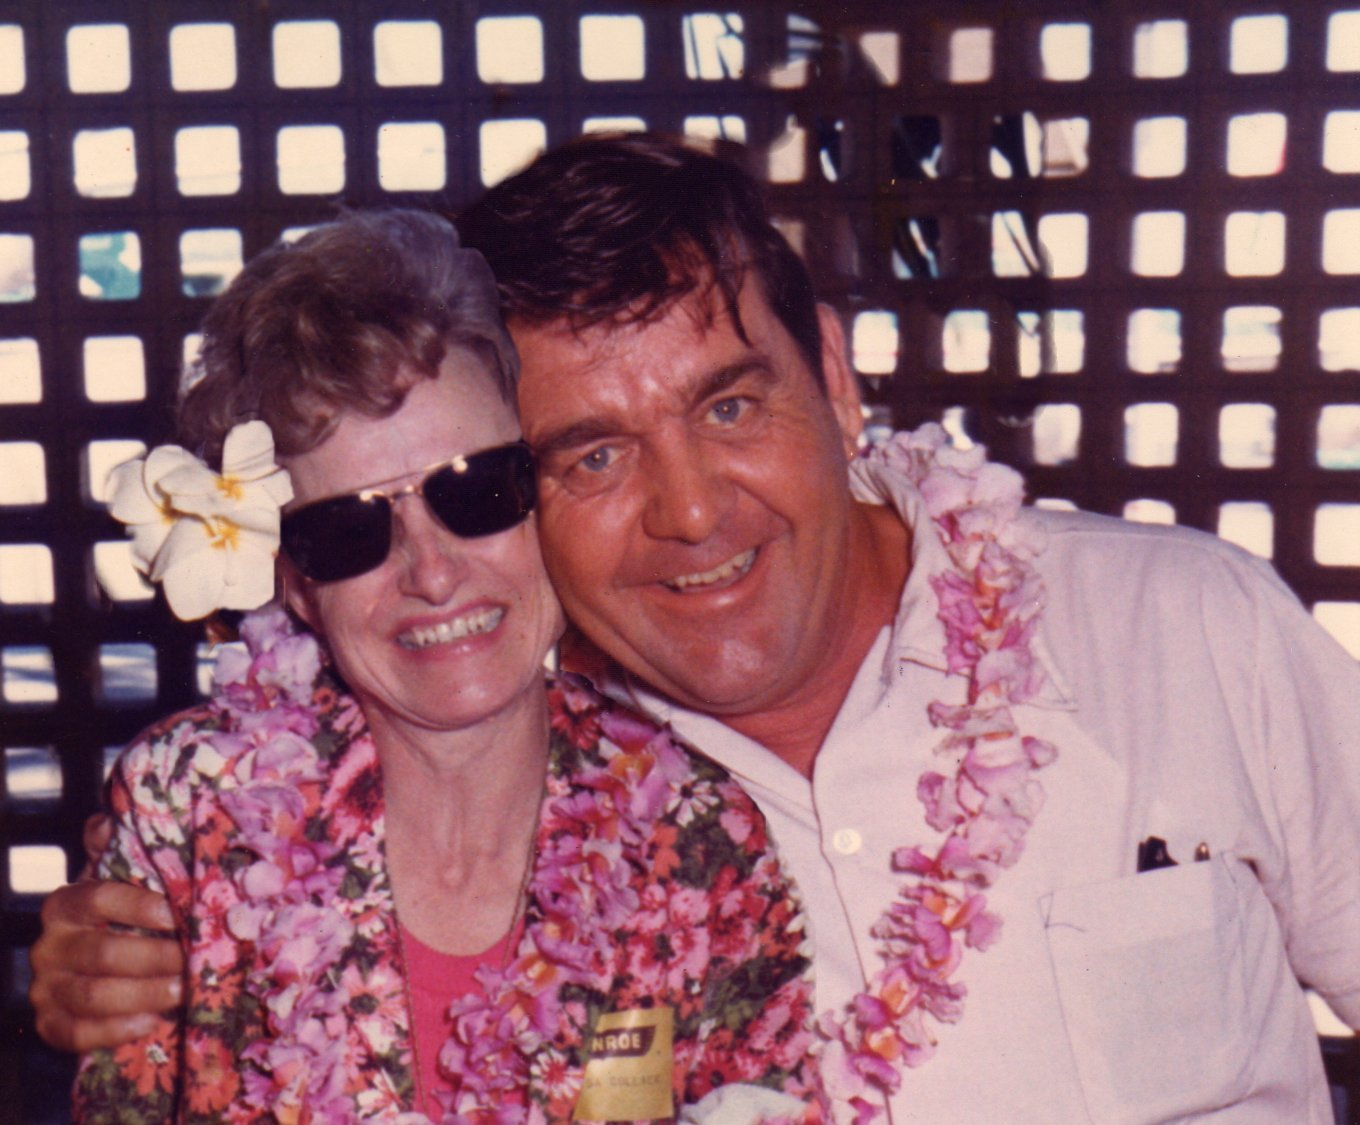 """This photo actually never existed. When they went to Hawaii on their 25th Anniversary, they were greeted by [and photographed with] a local man and woman. I took the man and woman out of the original photos and photoshopped Grandma and Grandpa together into one photo. I wish you could have seen Grandma's face when I showed her this photo. She said, """"I've never seen that photo before- where did you find it?"""""""